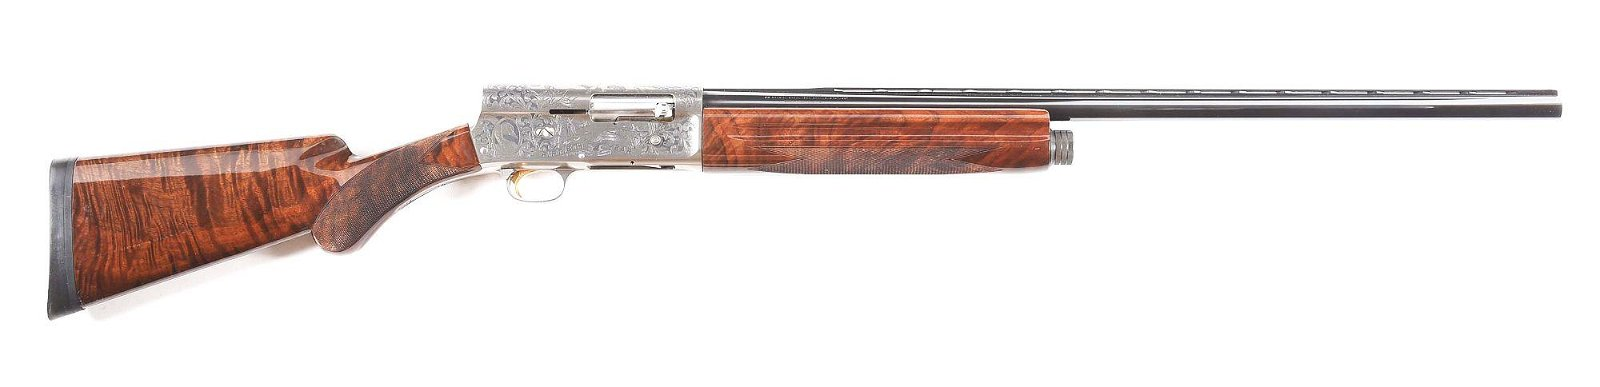 (M) BROWNING DUCKS UNLIMITED 1987 50TH ANNIVERSARY